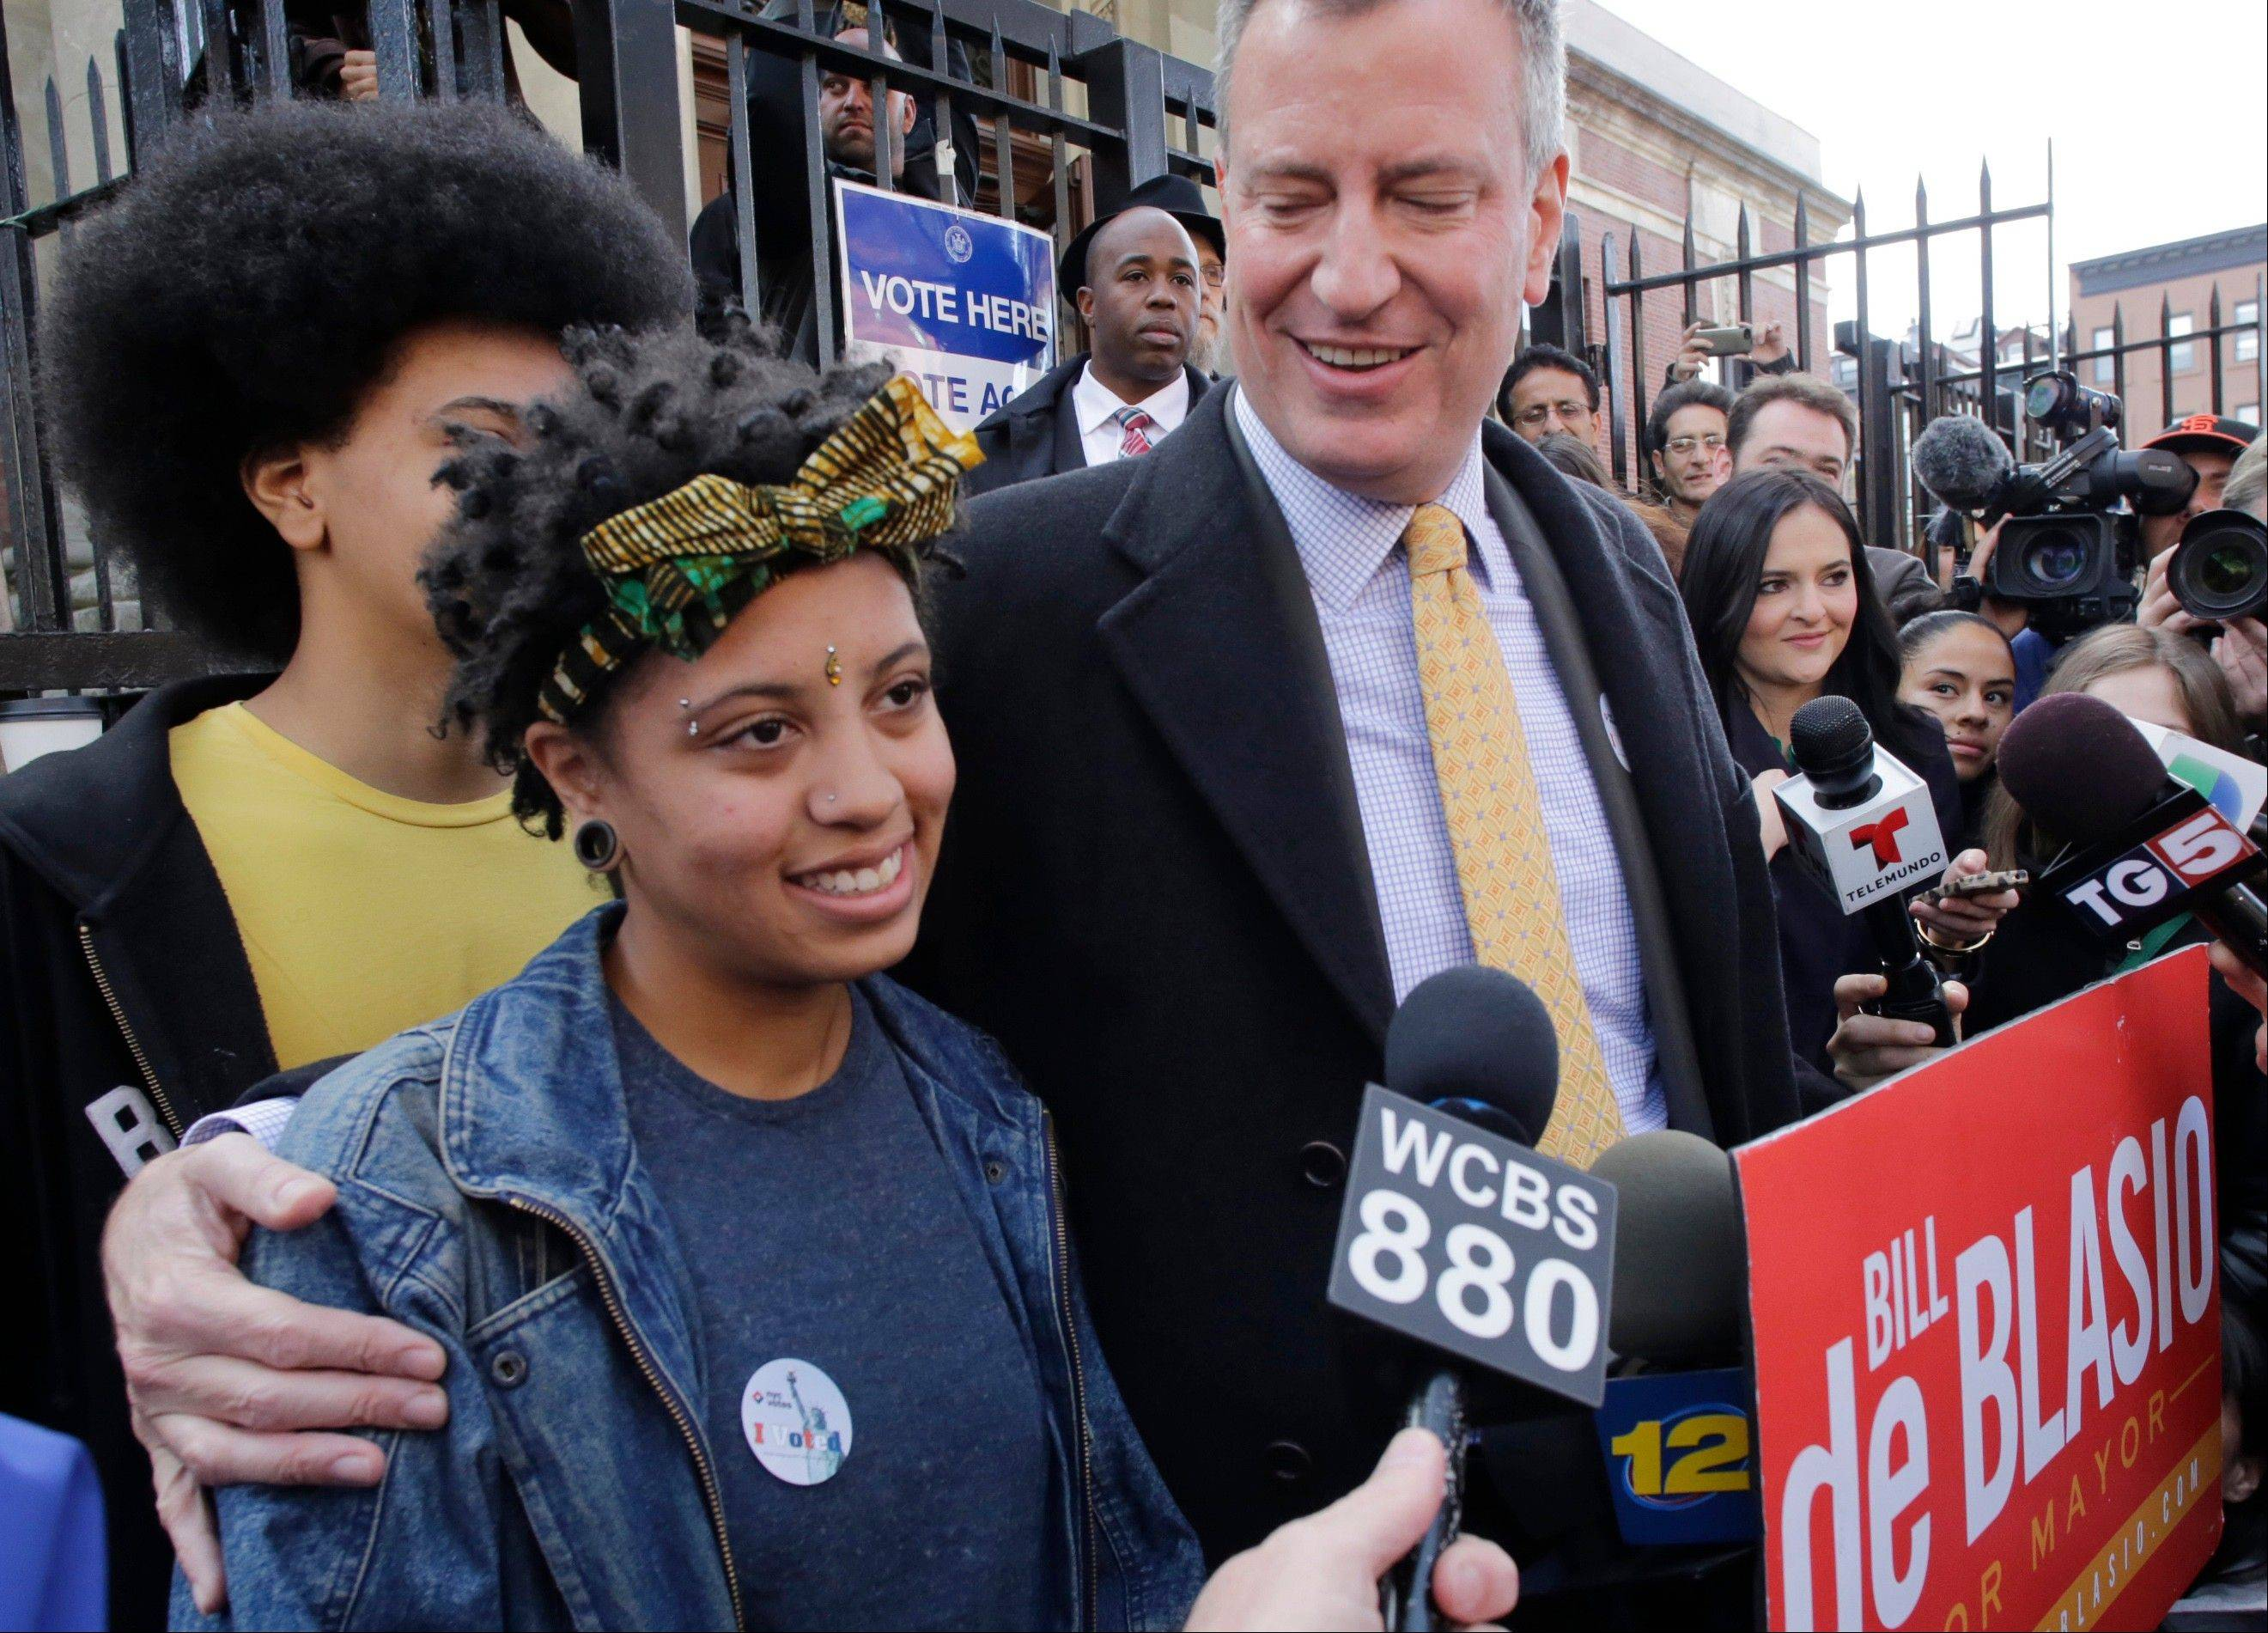 Chiara de Blasio stands with her father, then Democratic mayoral candidate Bill de Blasio, and her brother, Dante, left, after her father voted in Brooklyn, New York. On Christmas Eve, Chiara, 19, bared her soul on YouTube about her history of depression and substance abuse, and urged others to get help.